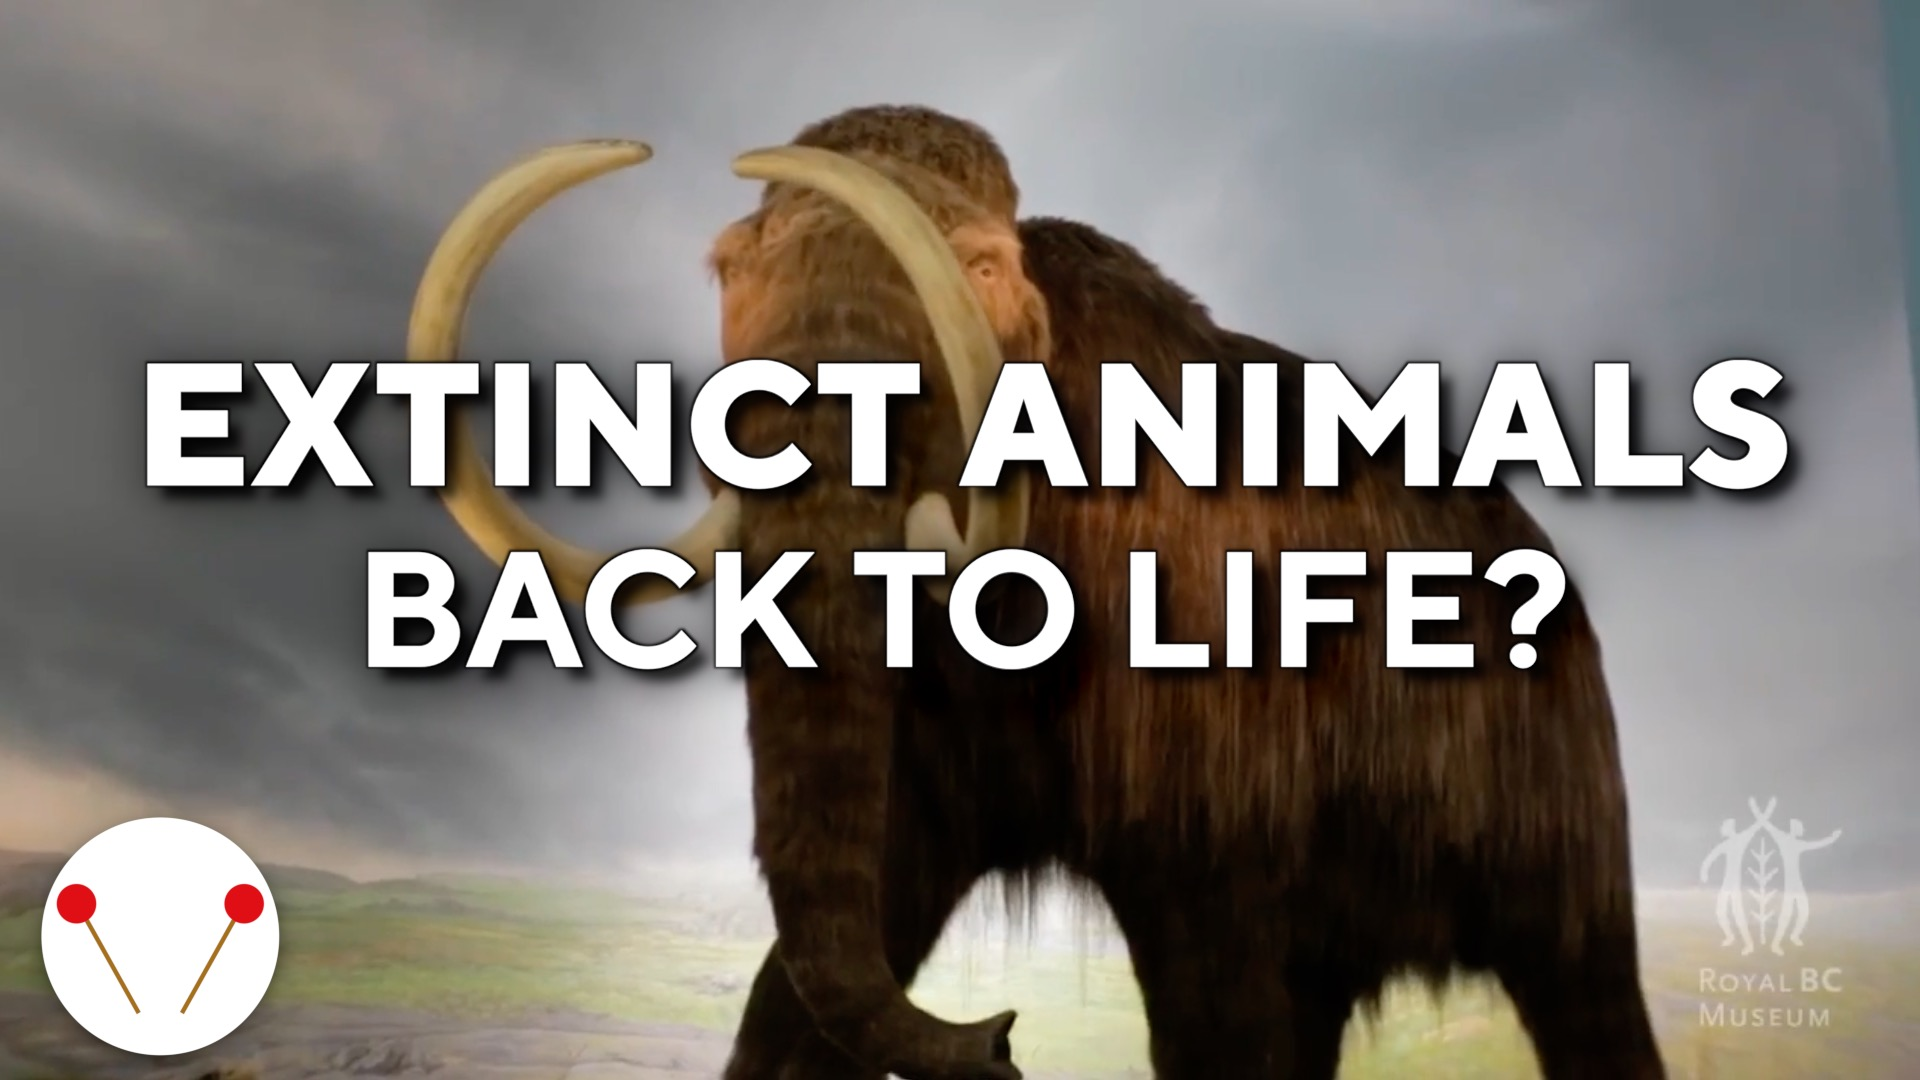 5 Extinct Animals That Scientists May Bring Back To Life